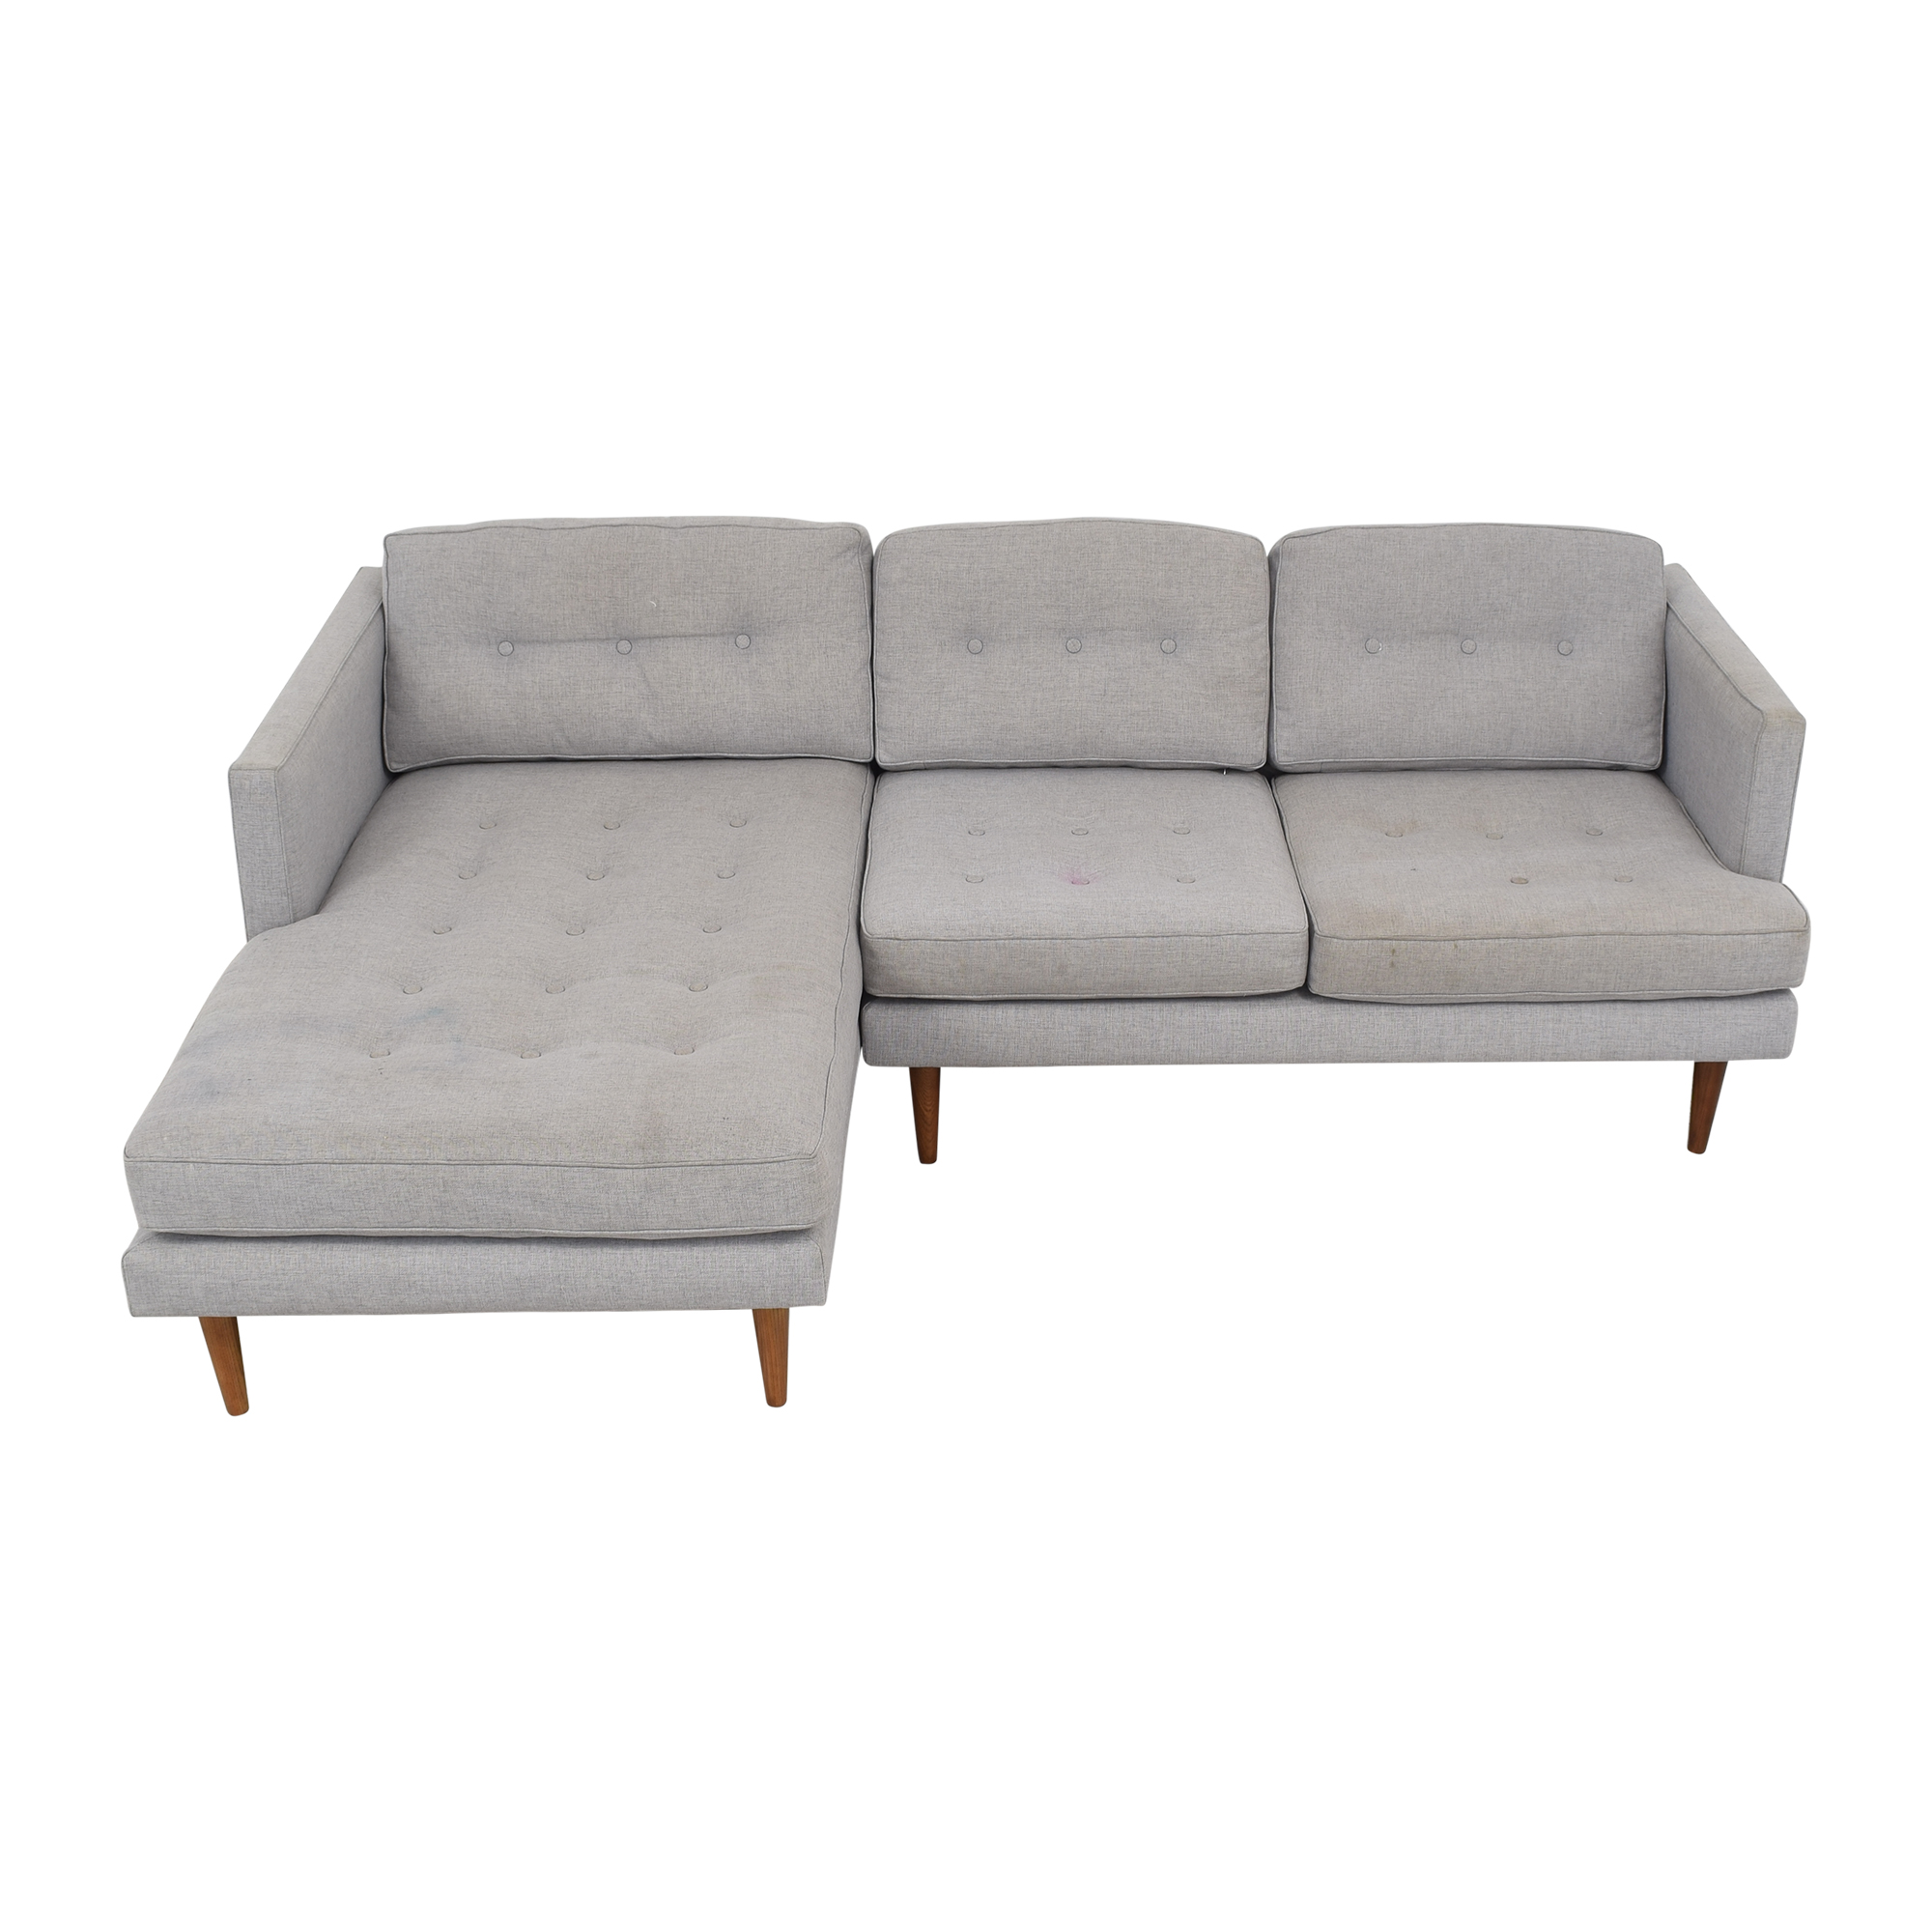 West Elm West Elm Peggy Mid-Century Chaise Sectional Sofa for sale